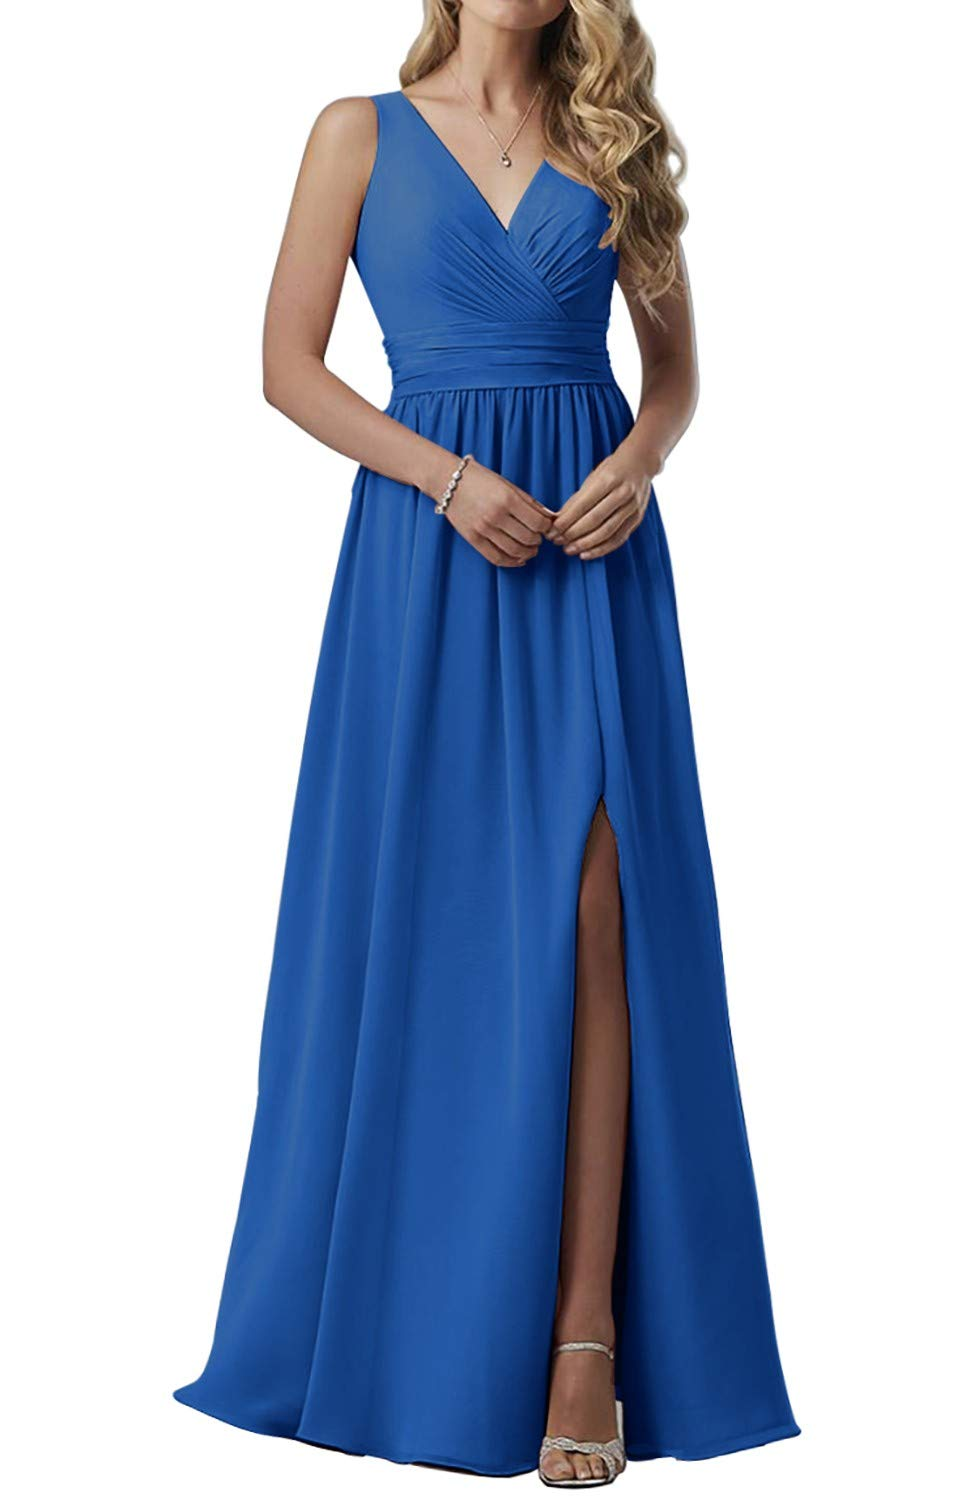 Women's Double V-Neck Bridesmaid Dresses Long Maxi Chiffon Ladies Prom Party Gown